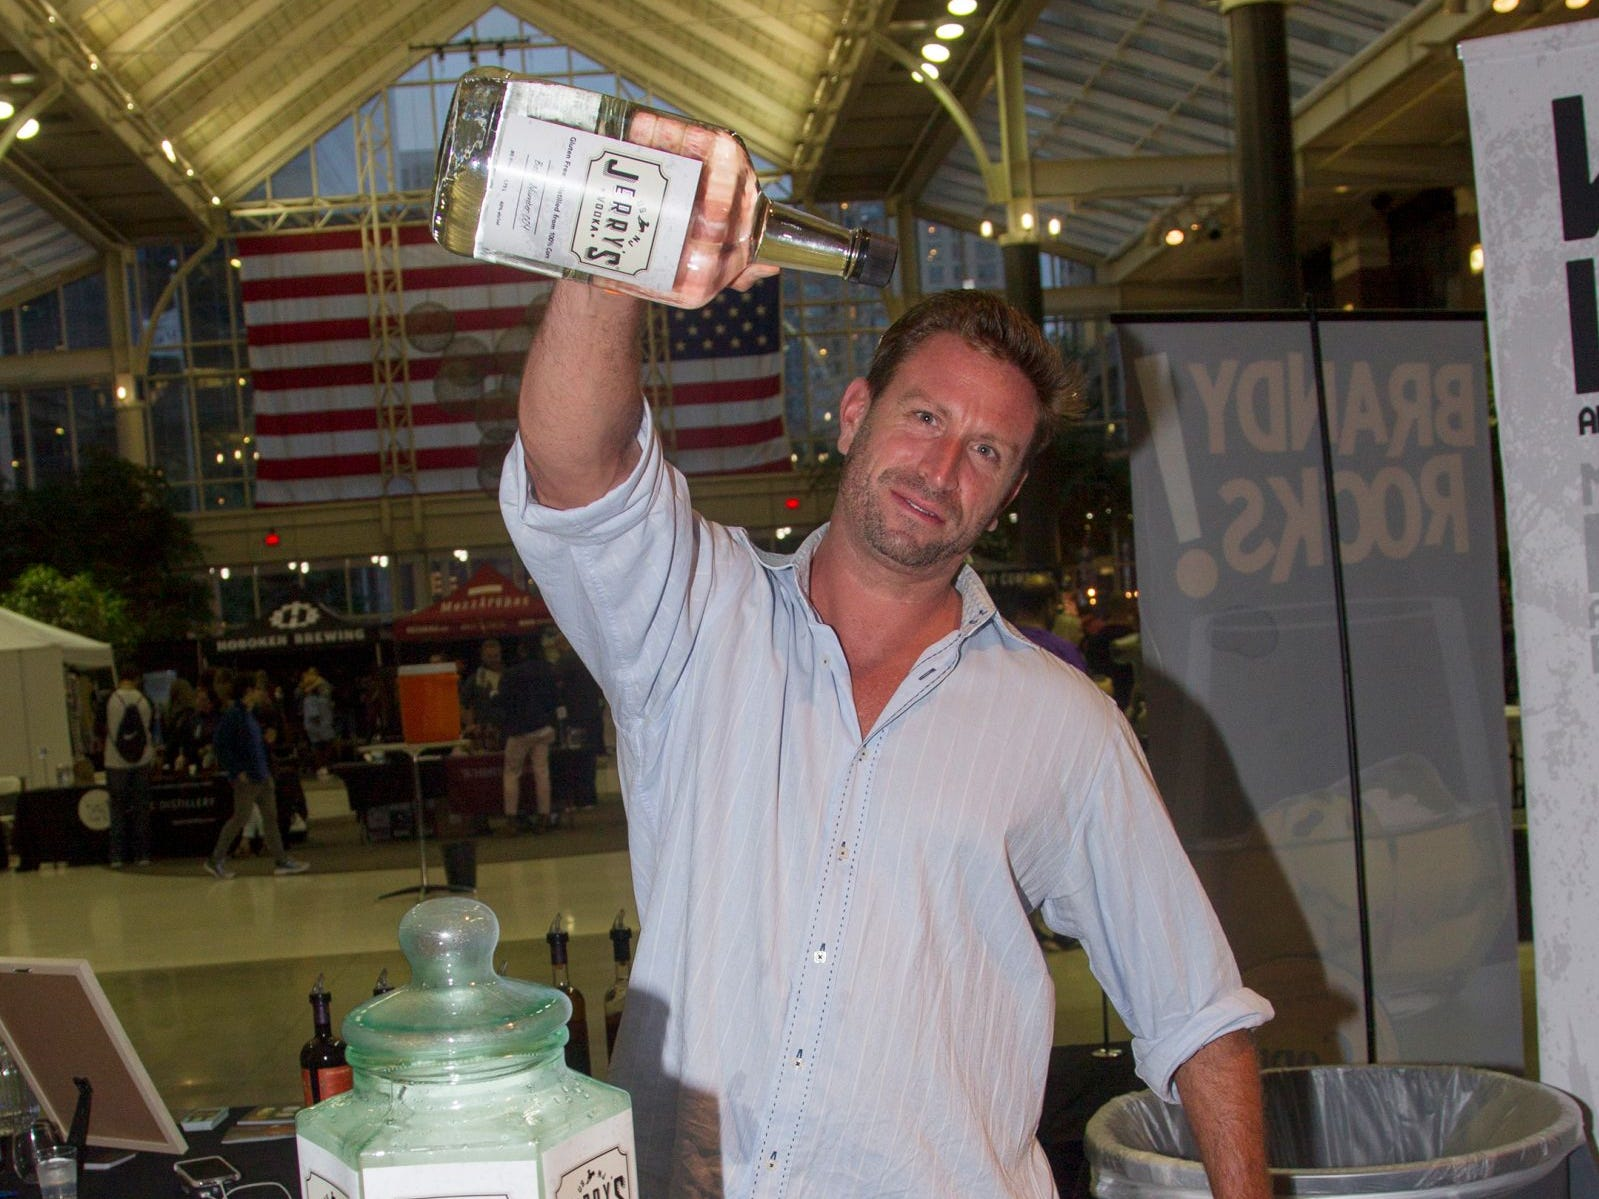 Jerry's Vodka. Jersey City Craft Distillery Fest at the Harborside Atrium featured more than 100 styles of spirits. Guests had the chance to taste craft-distilled spirits from moonshine, rum, cognac, whiskey, vodka, gin, tequila and more. 09/08/2018